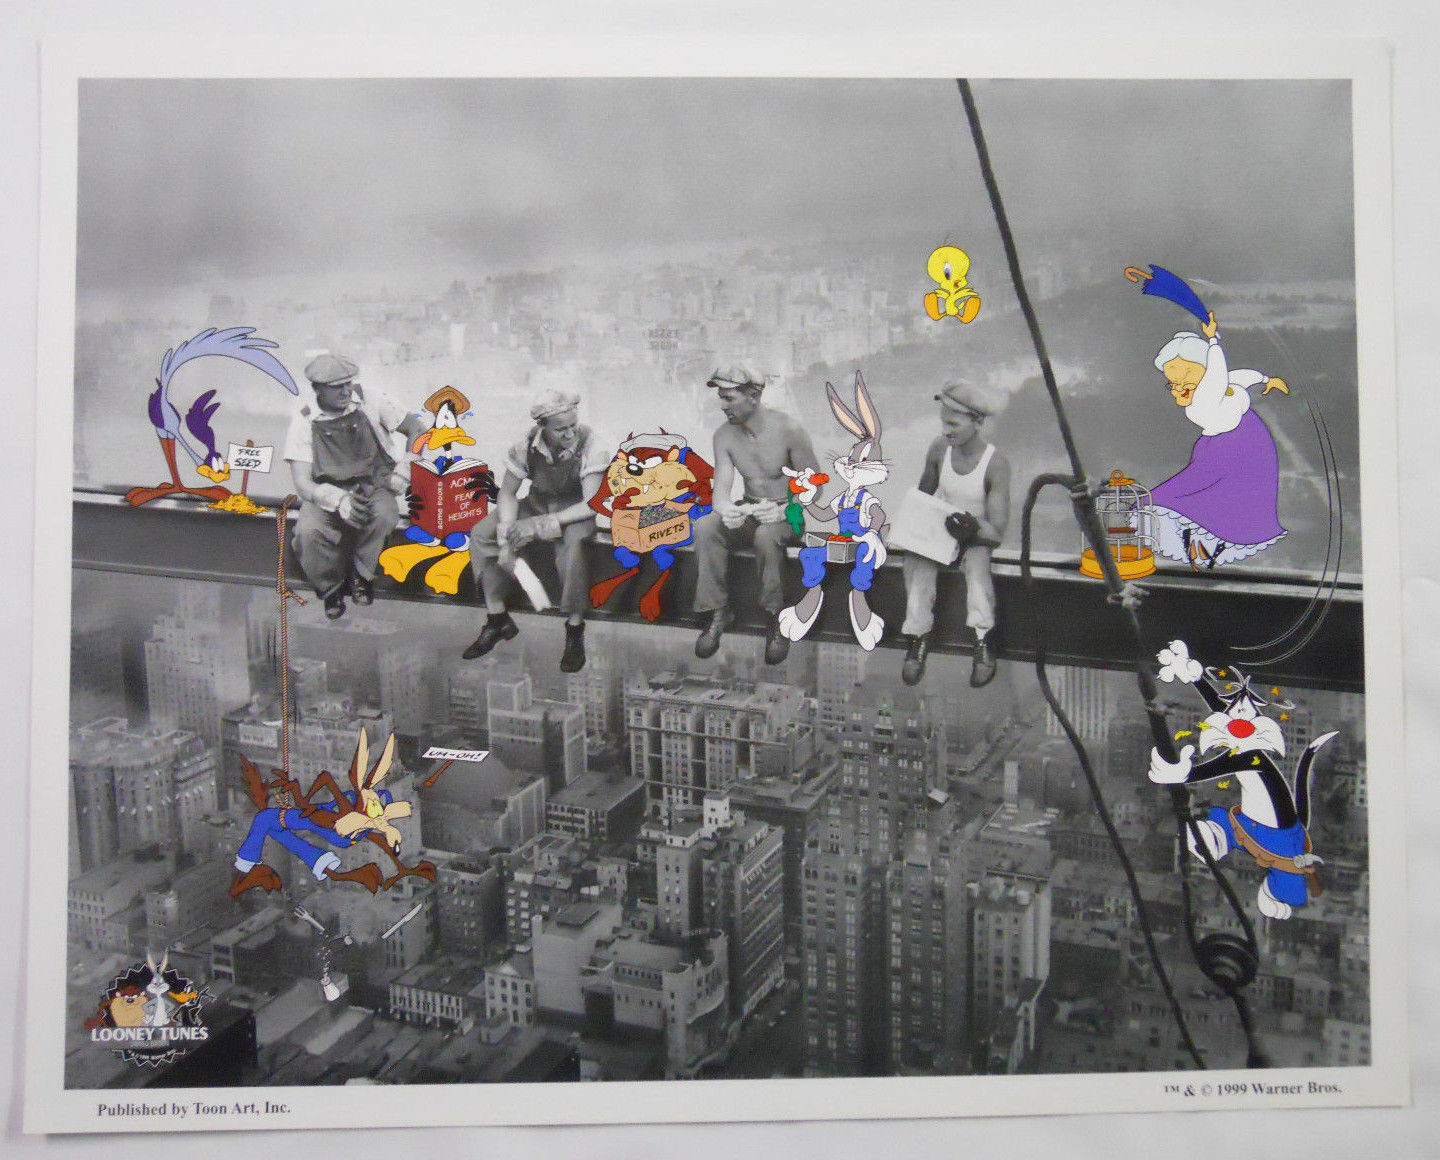 granny looney tunes wiki fandom powered by wikia 1999 toon art looney tunes lunch break atop a skyscraper lithograph print